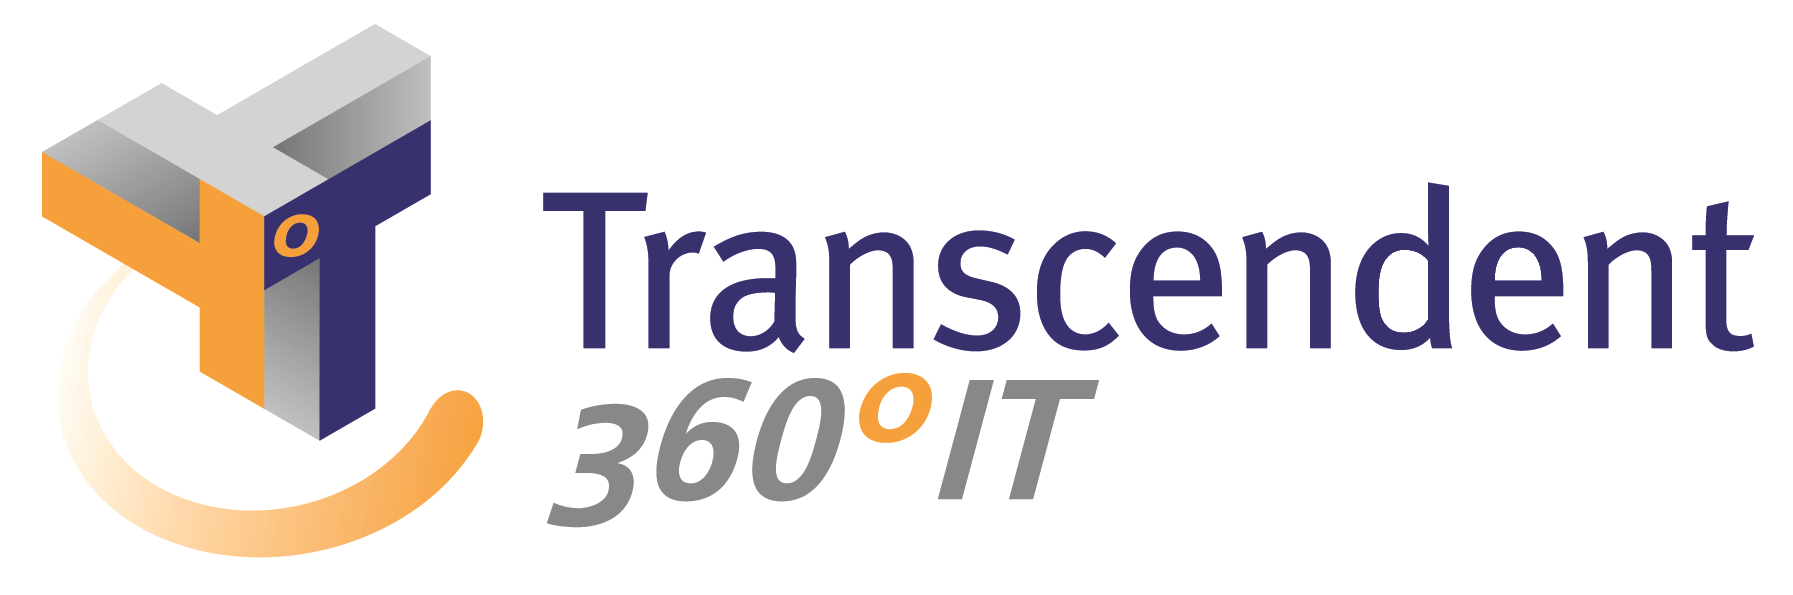 Transcendent is a full service IT consulting and Managed Service Provider with Cloud Hosting and Development and SharePoint Engineers in Wisconsin